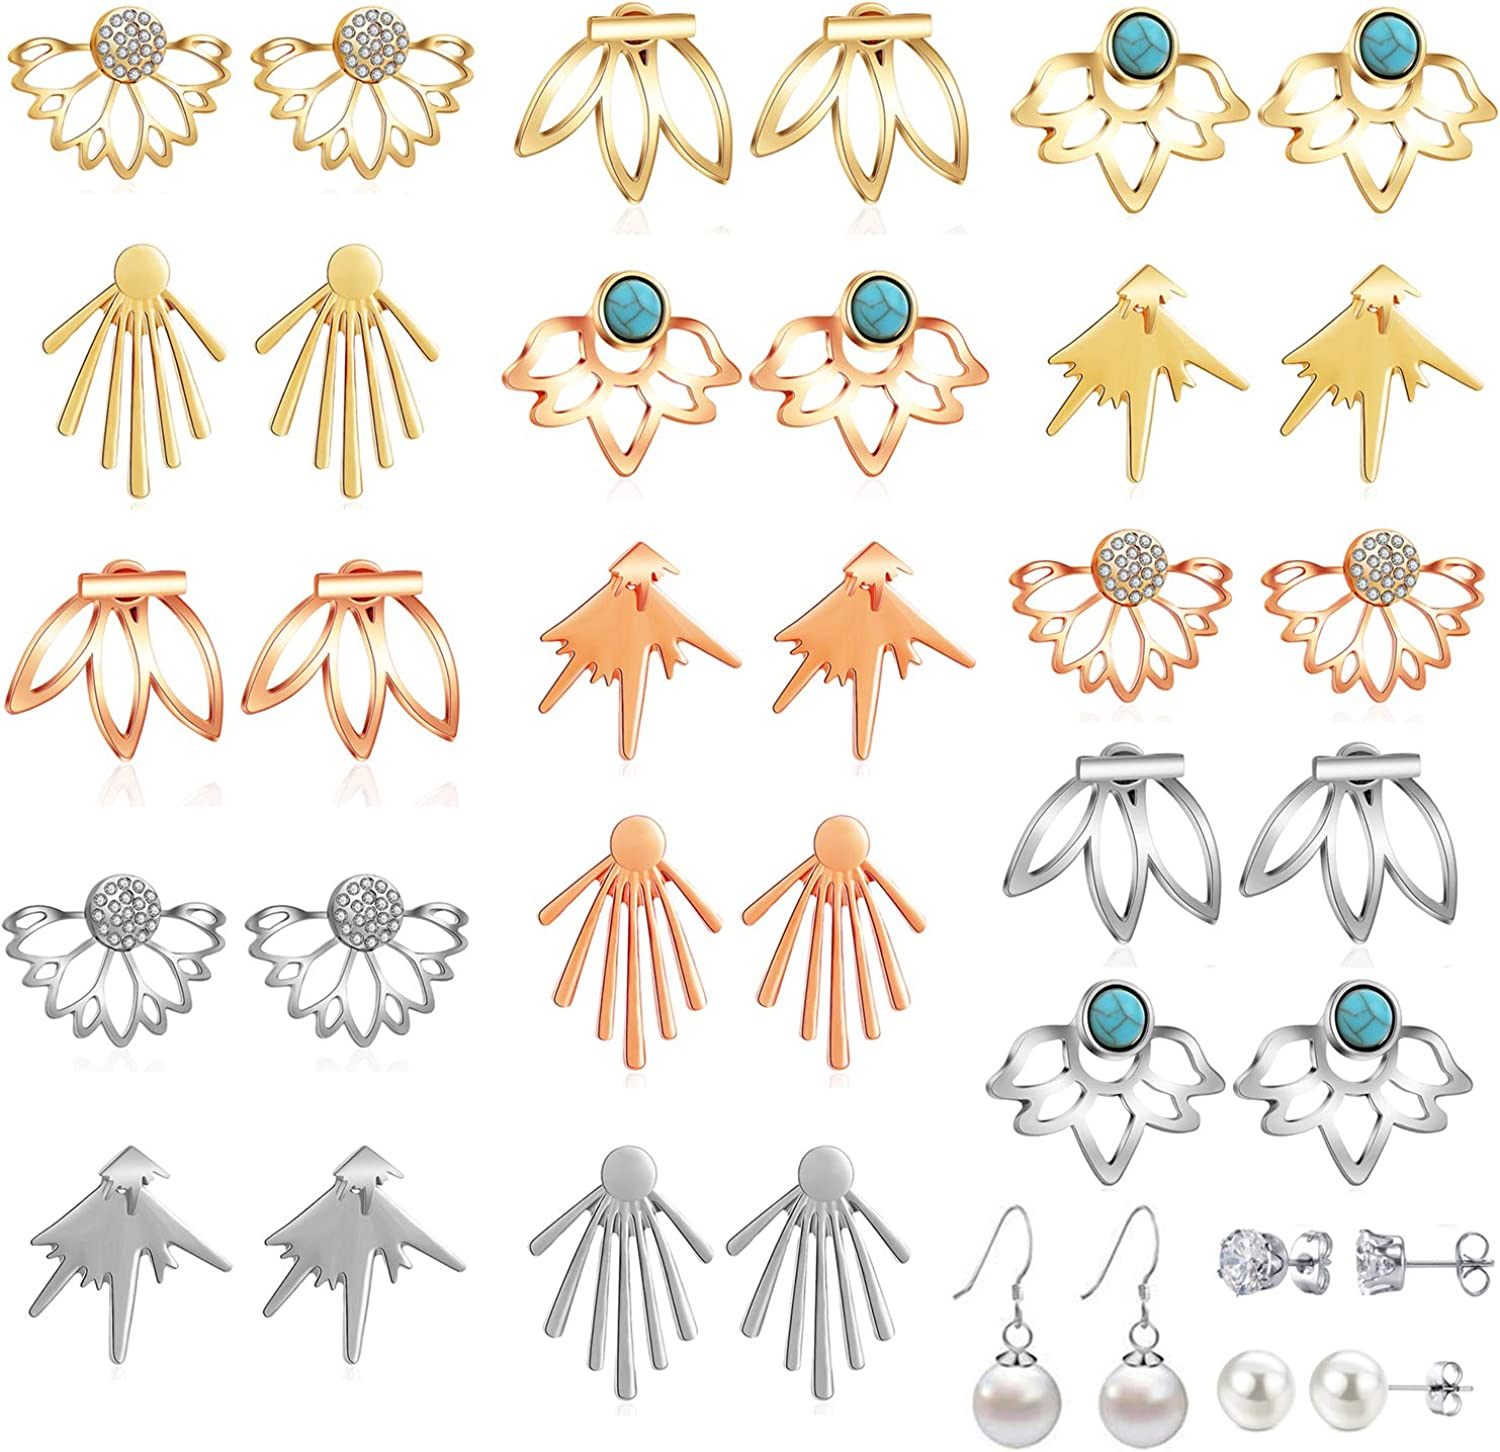 18 Pairs Multiple Dainty Lotus Flower Ear Jacket Earrings-Minimalism CZ Bar Turquoise Studs-White Rose Gold Plated Statement Chic Fashion Stud Earring Set New Year Christmas Gift for Teens Girl Women